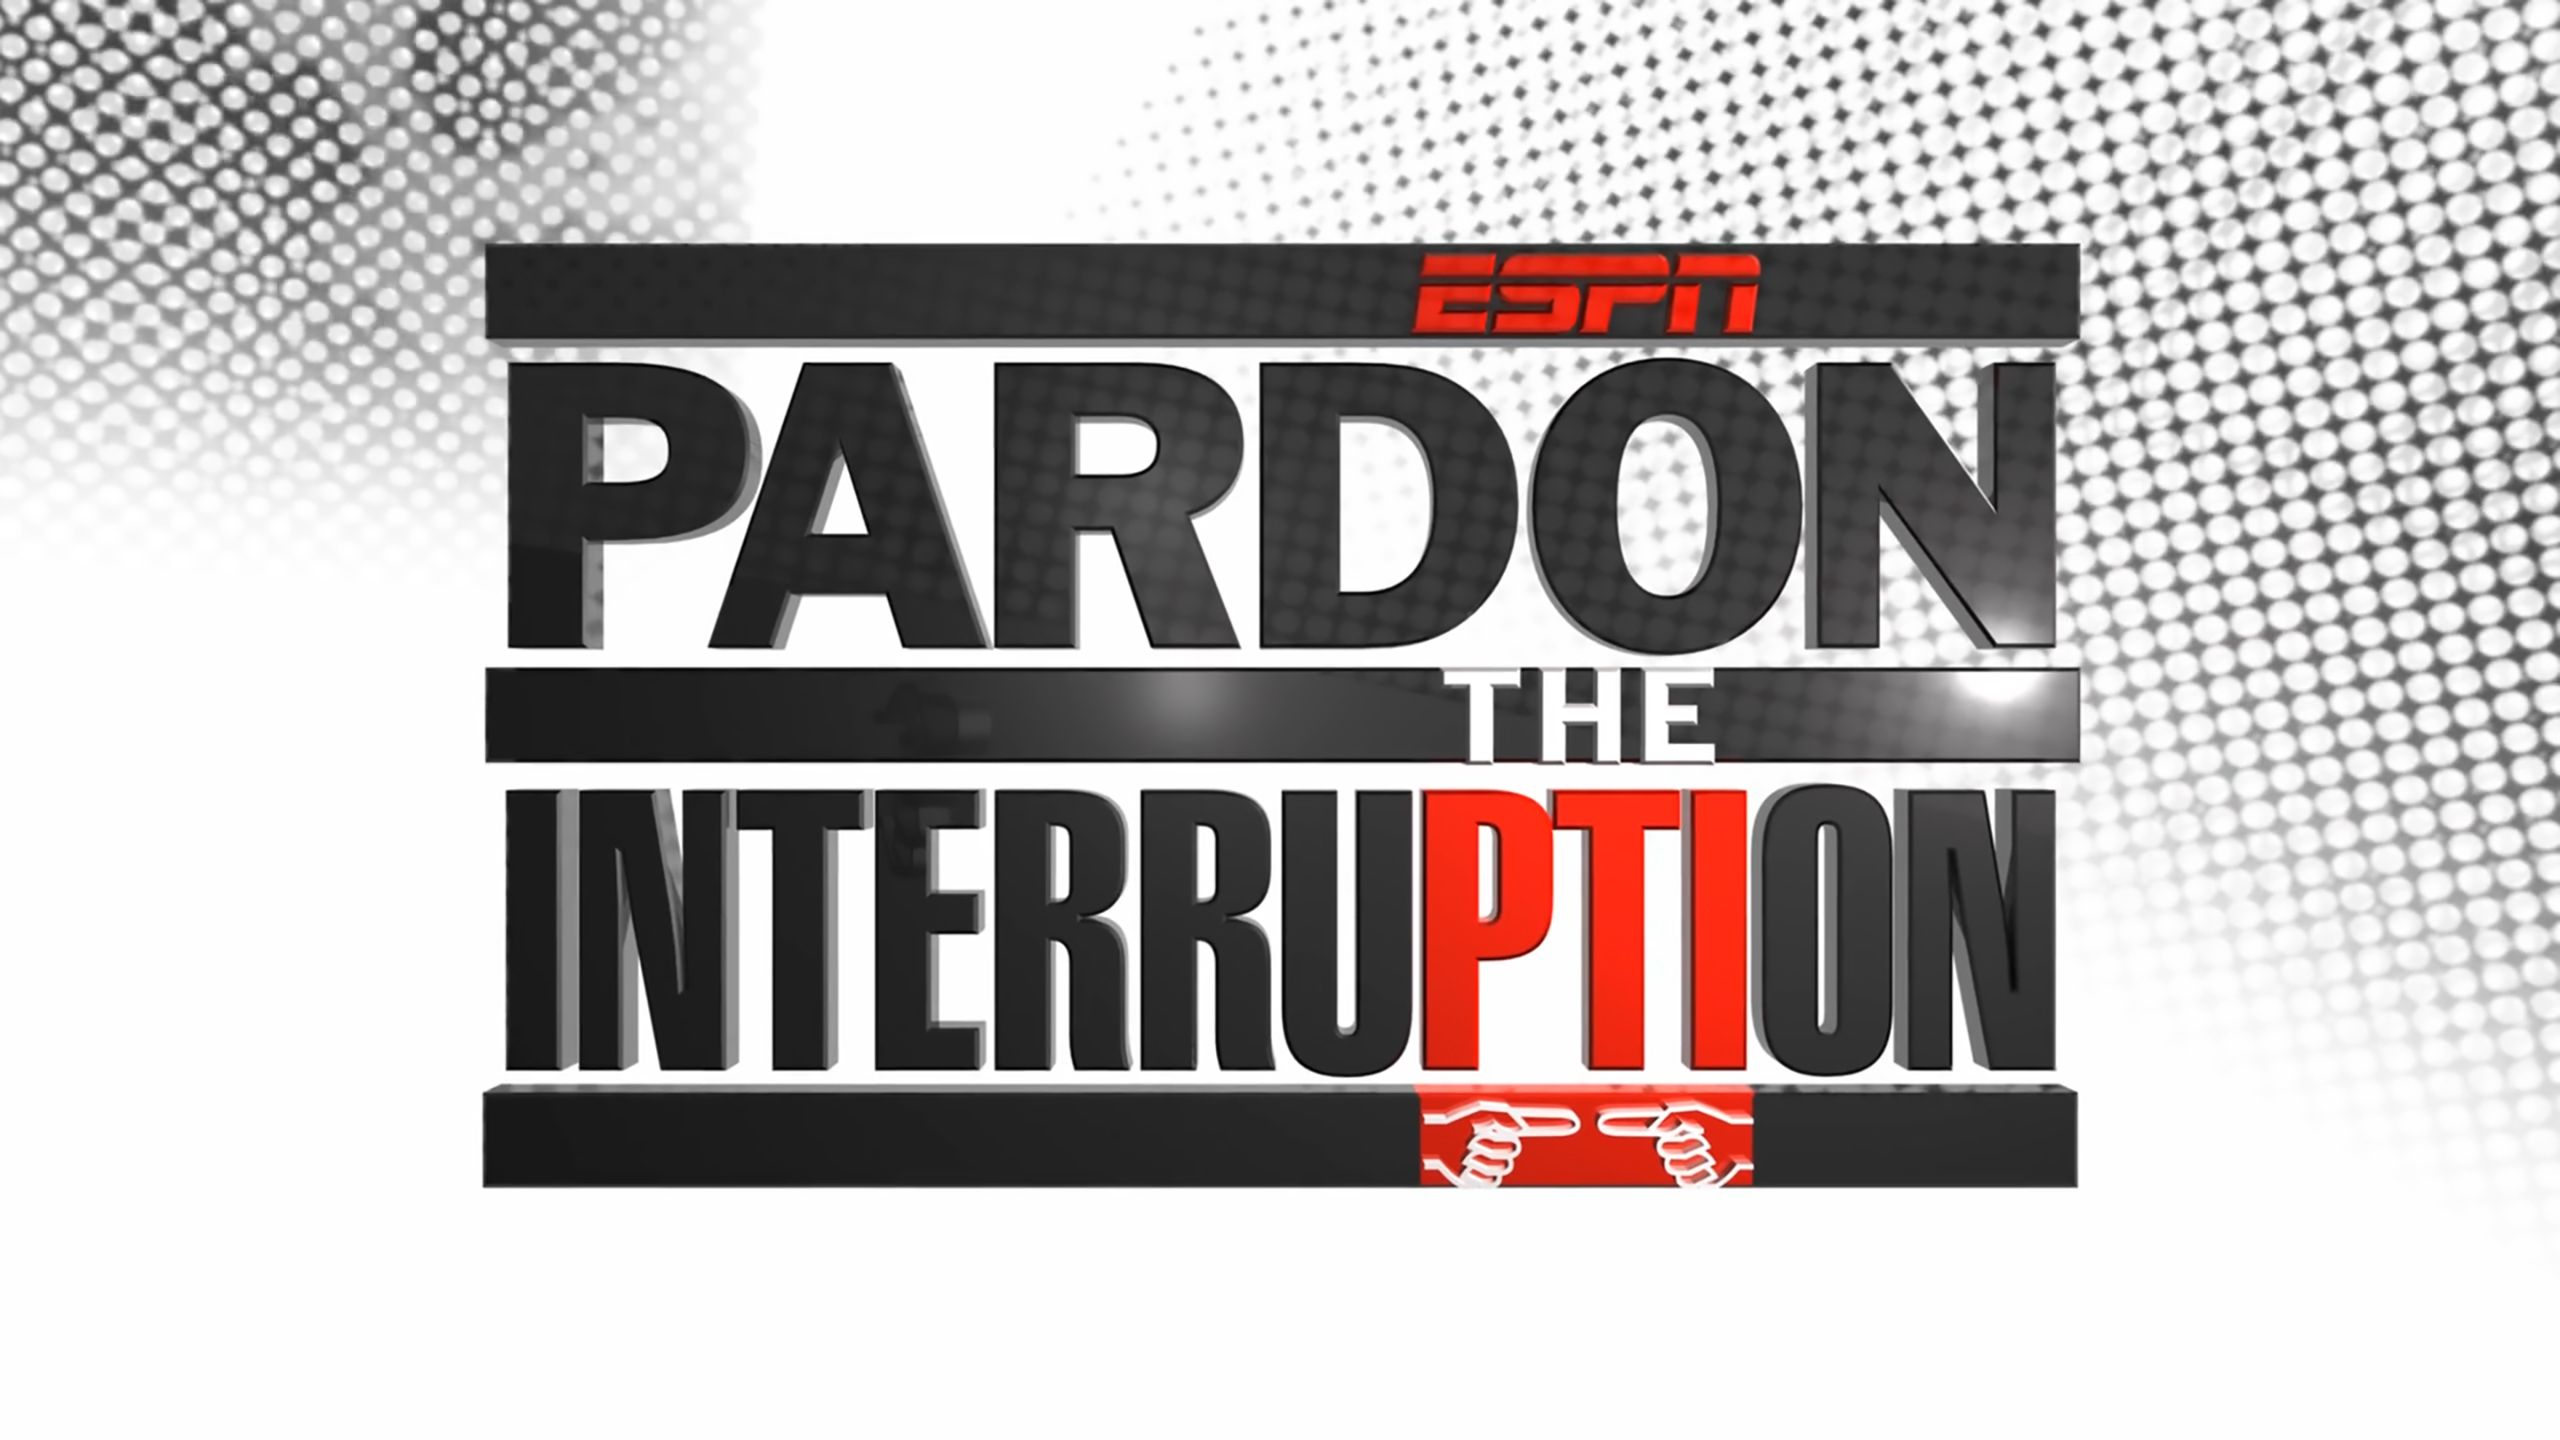 Mon, 10/23 - Pardon The Interruption